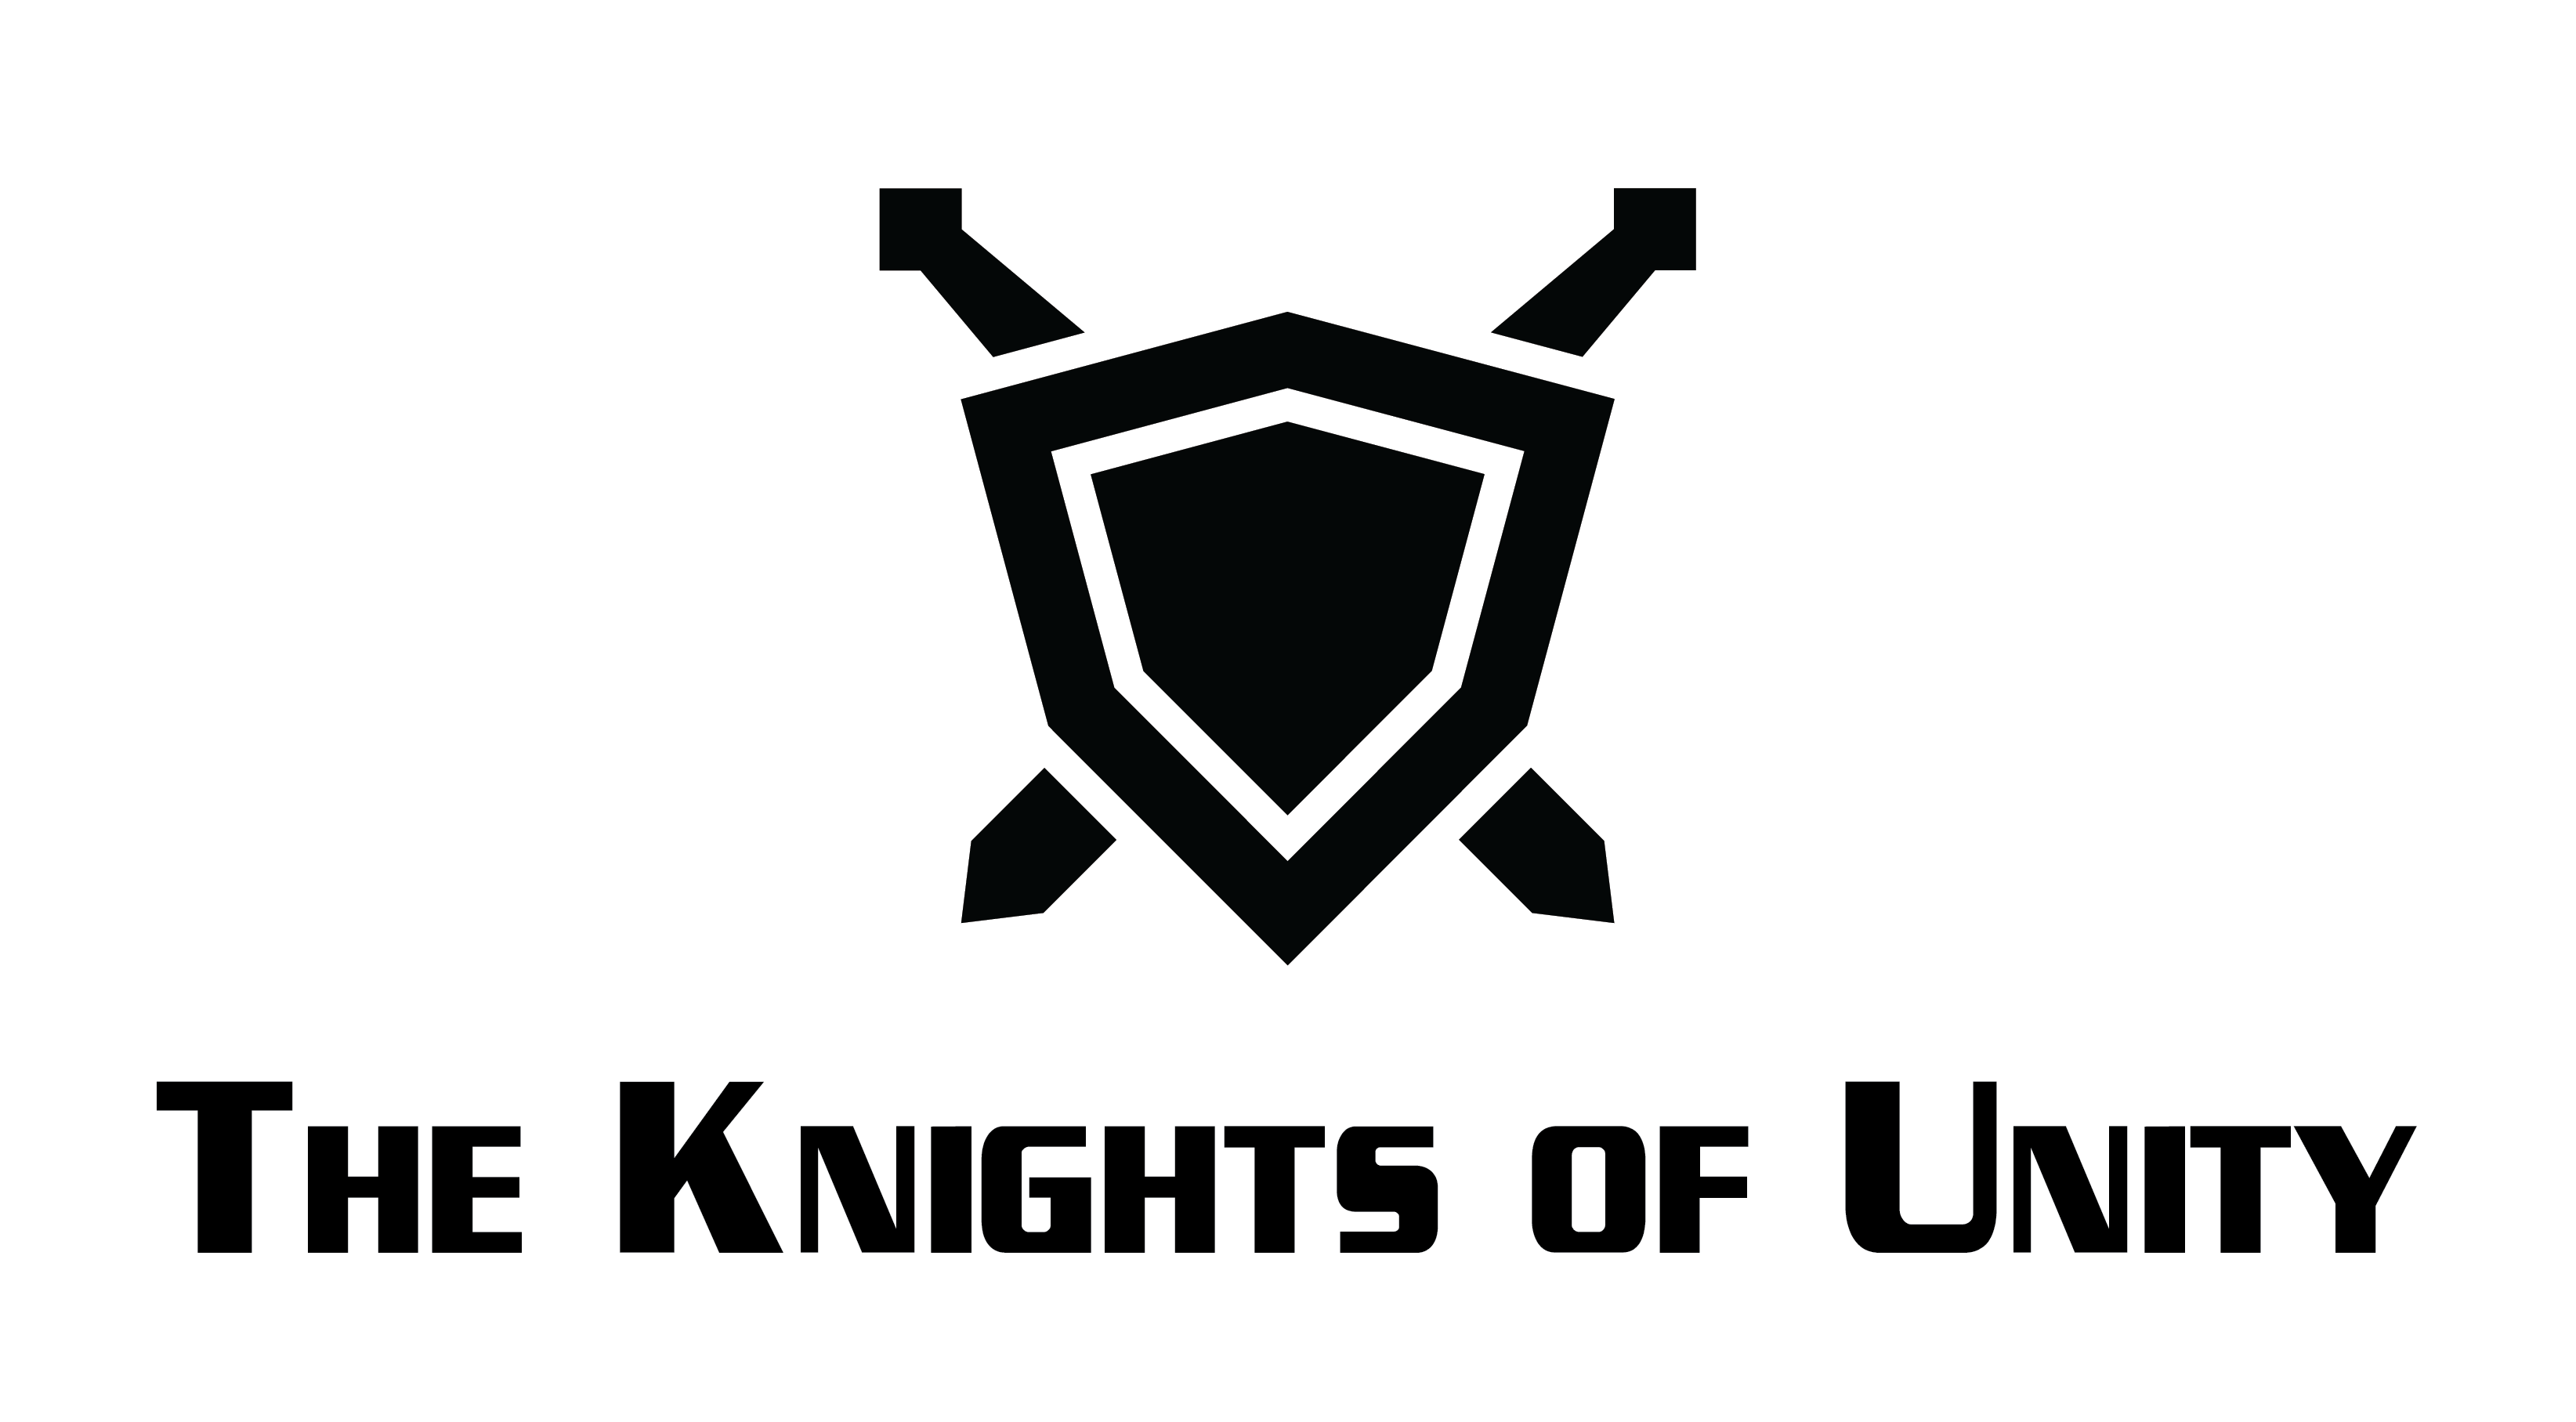 7 Ways to Keep Your Unity Project Organized - The Knights of Unity